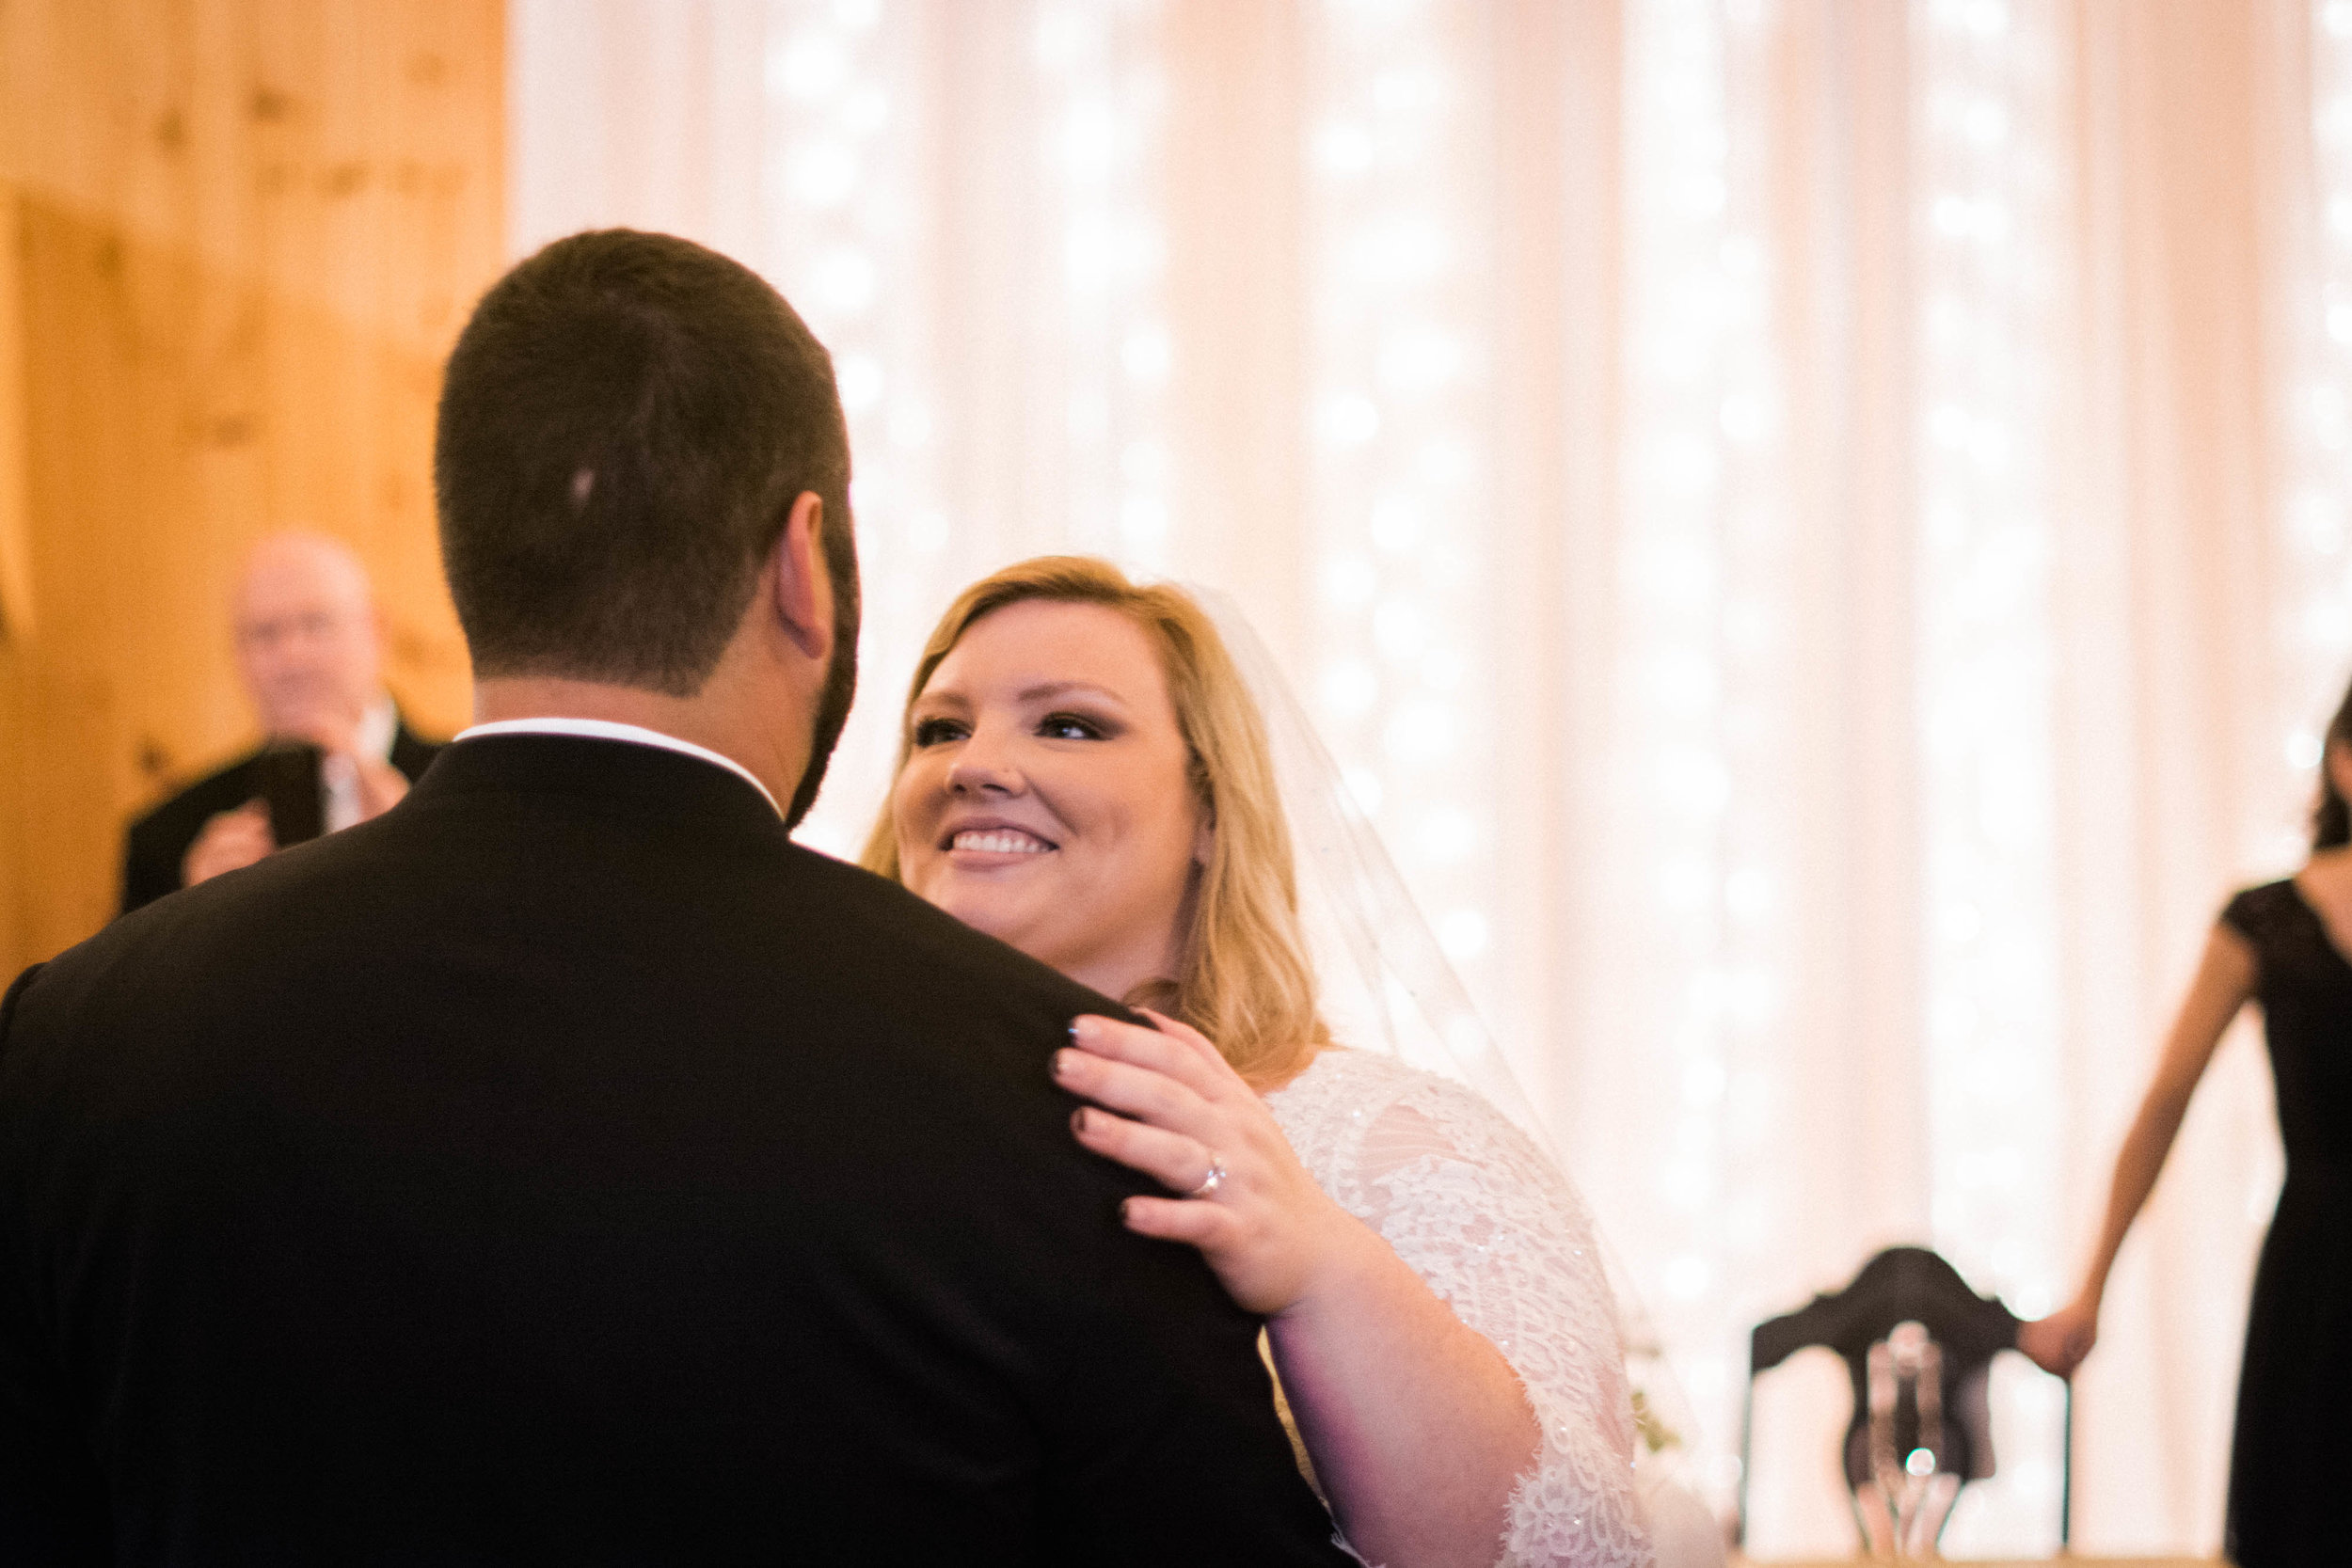 serra valley bride and groom first dance photo